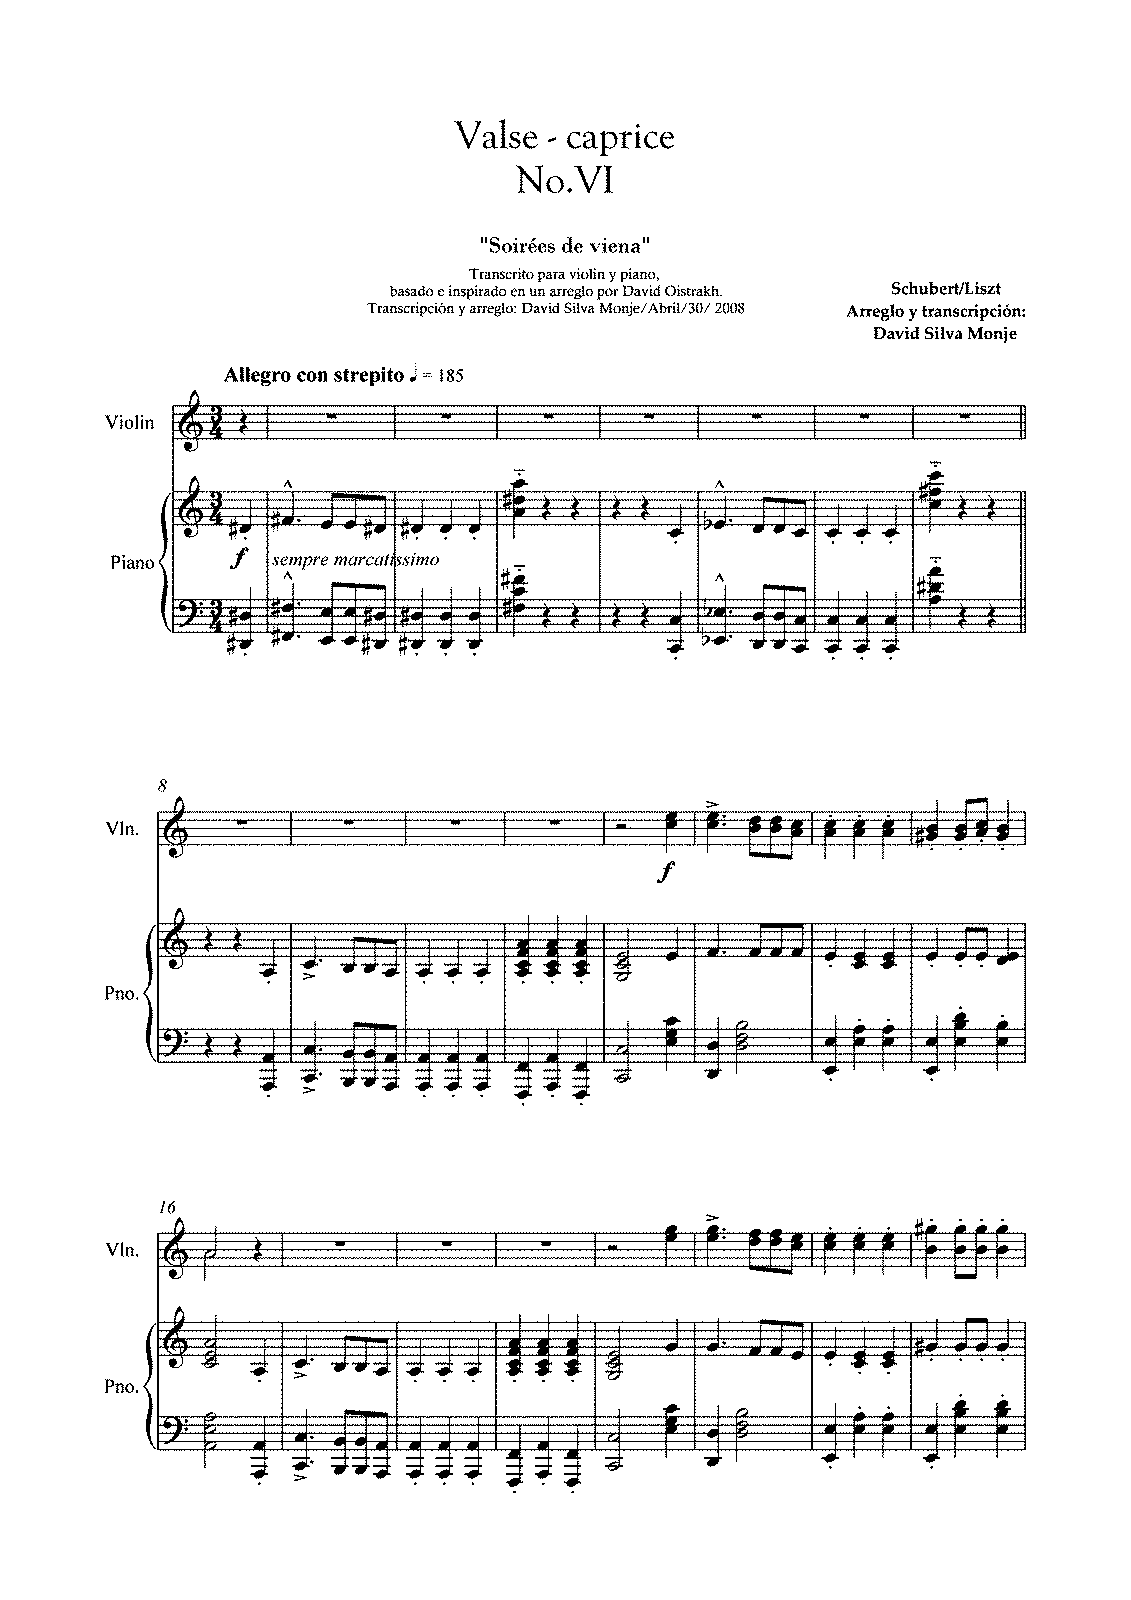 Schubert-Liszt Valse Caprice piano.pdf